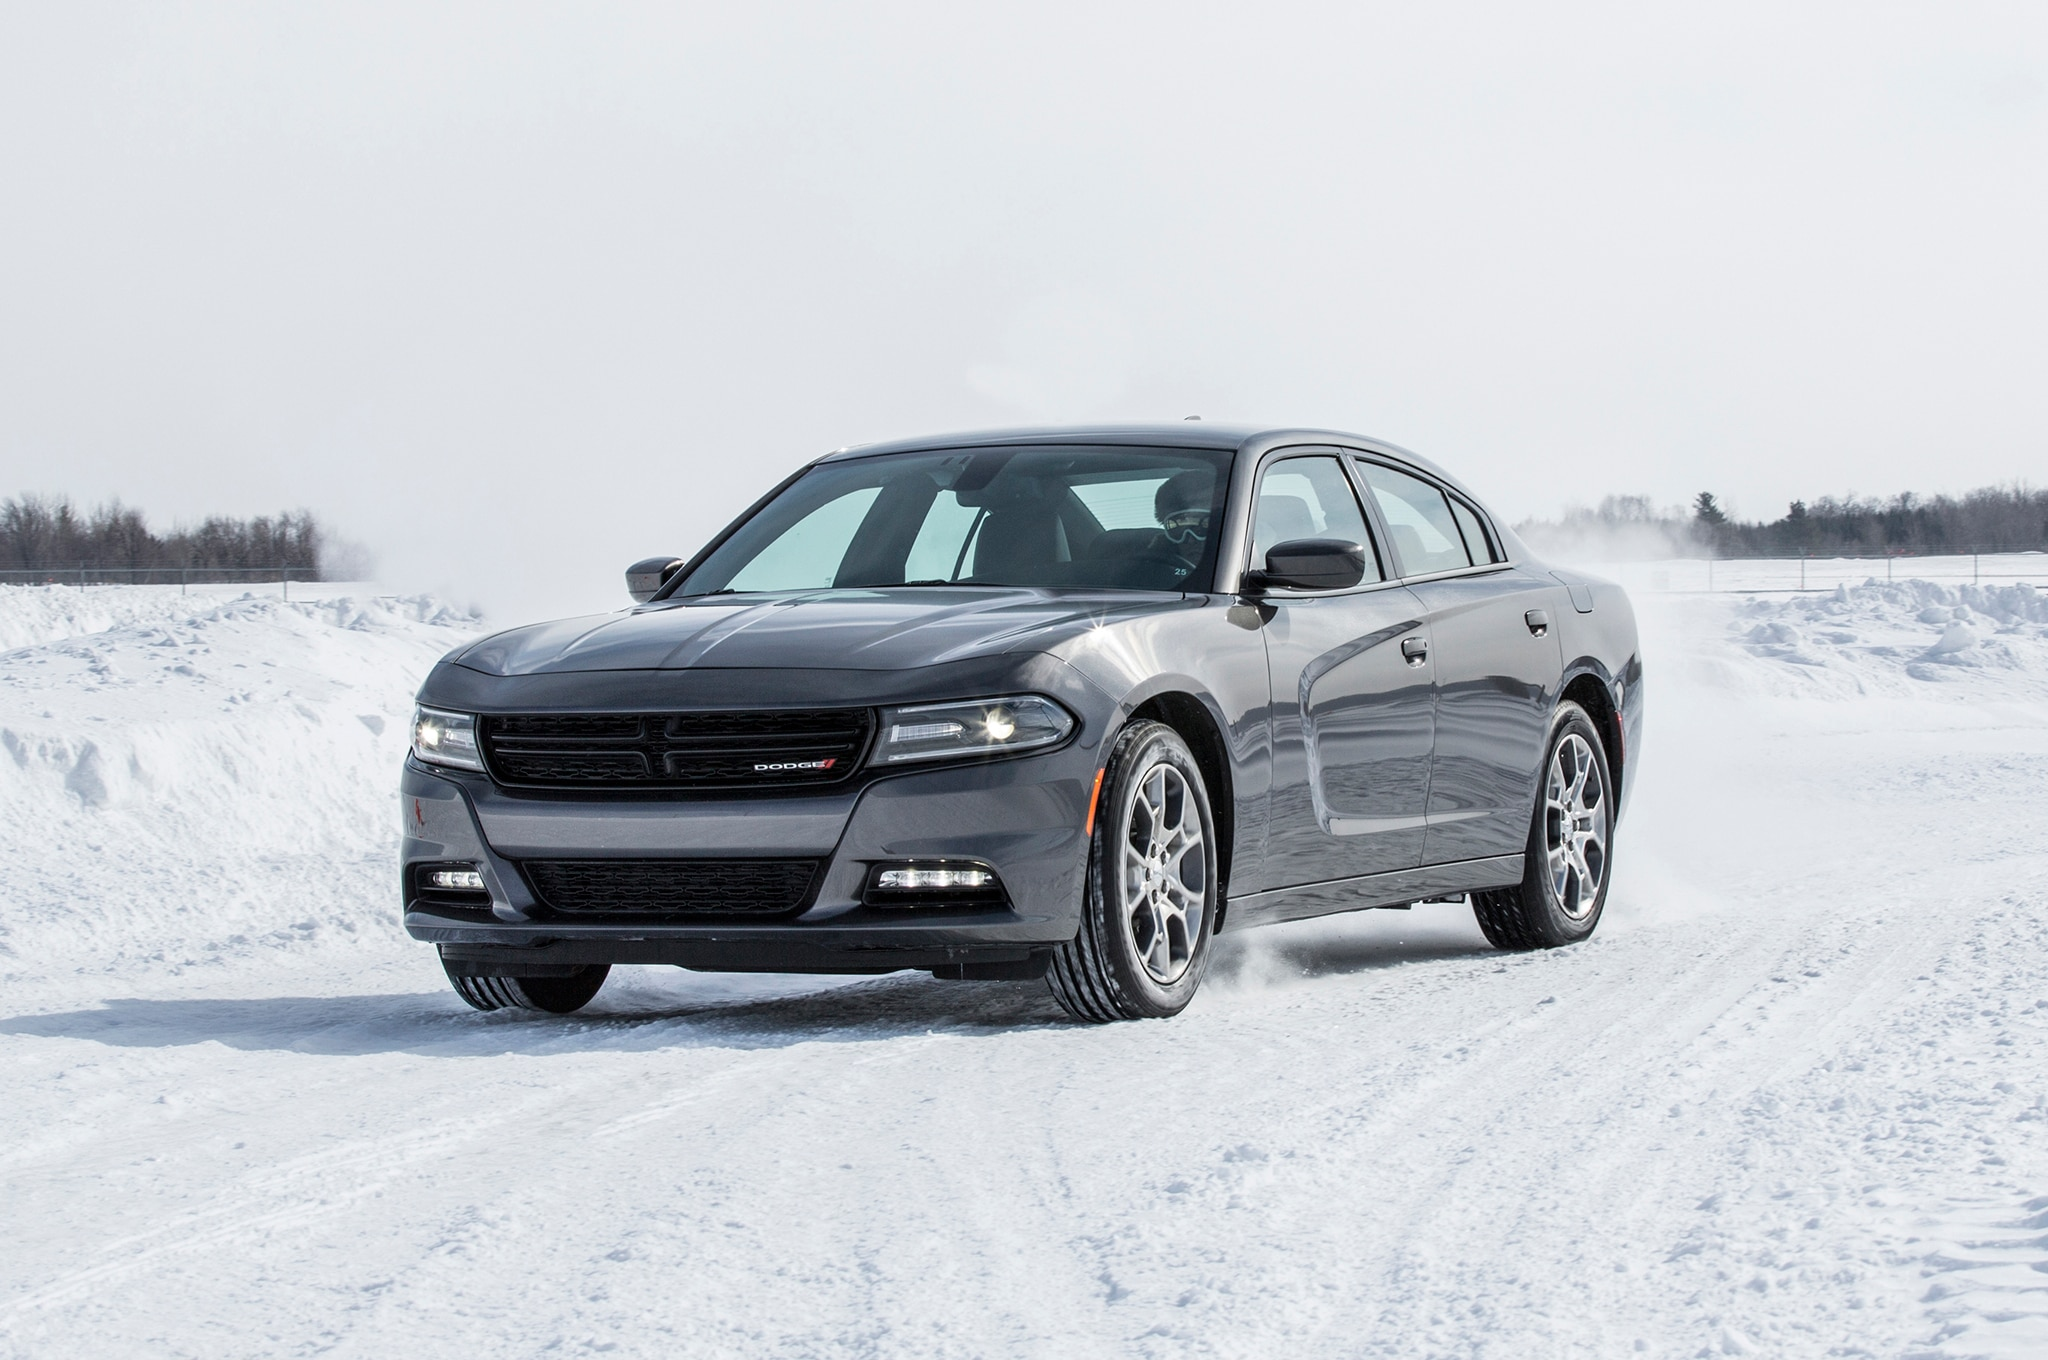 2015 dodge charger sxt awd front three quarter in motion 02. Black Bedroom Furniture Sets. Home Design Ideas